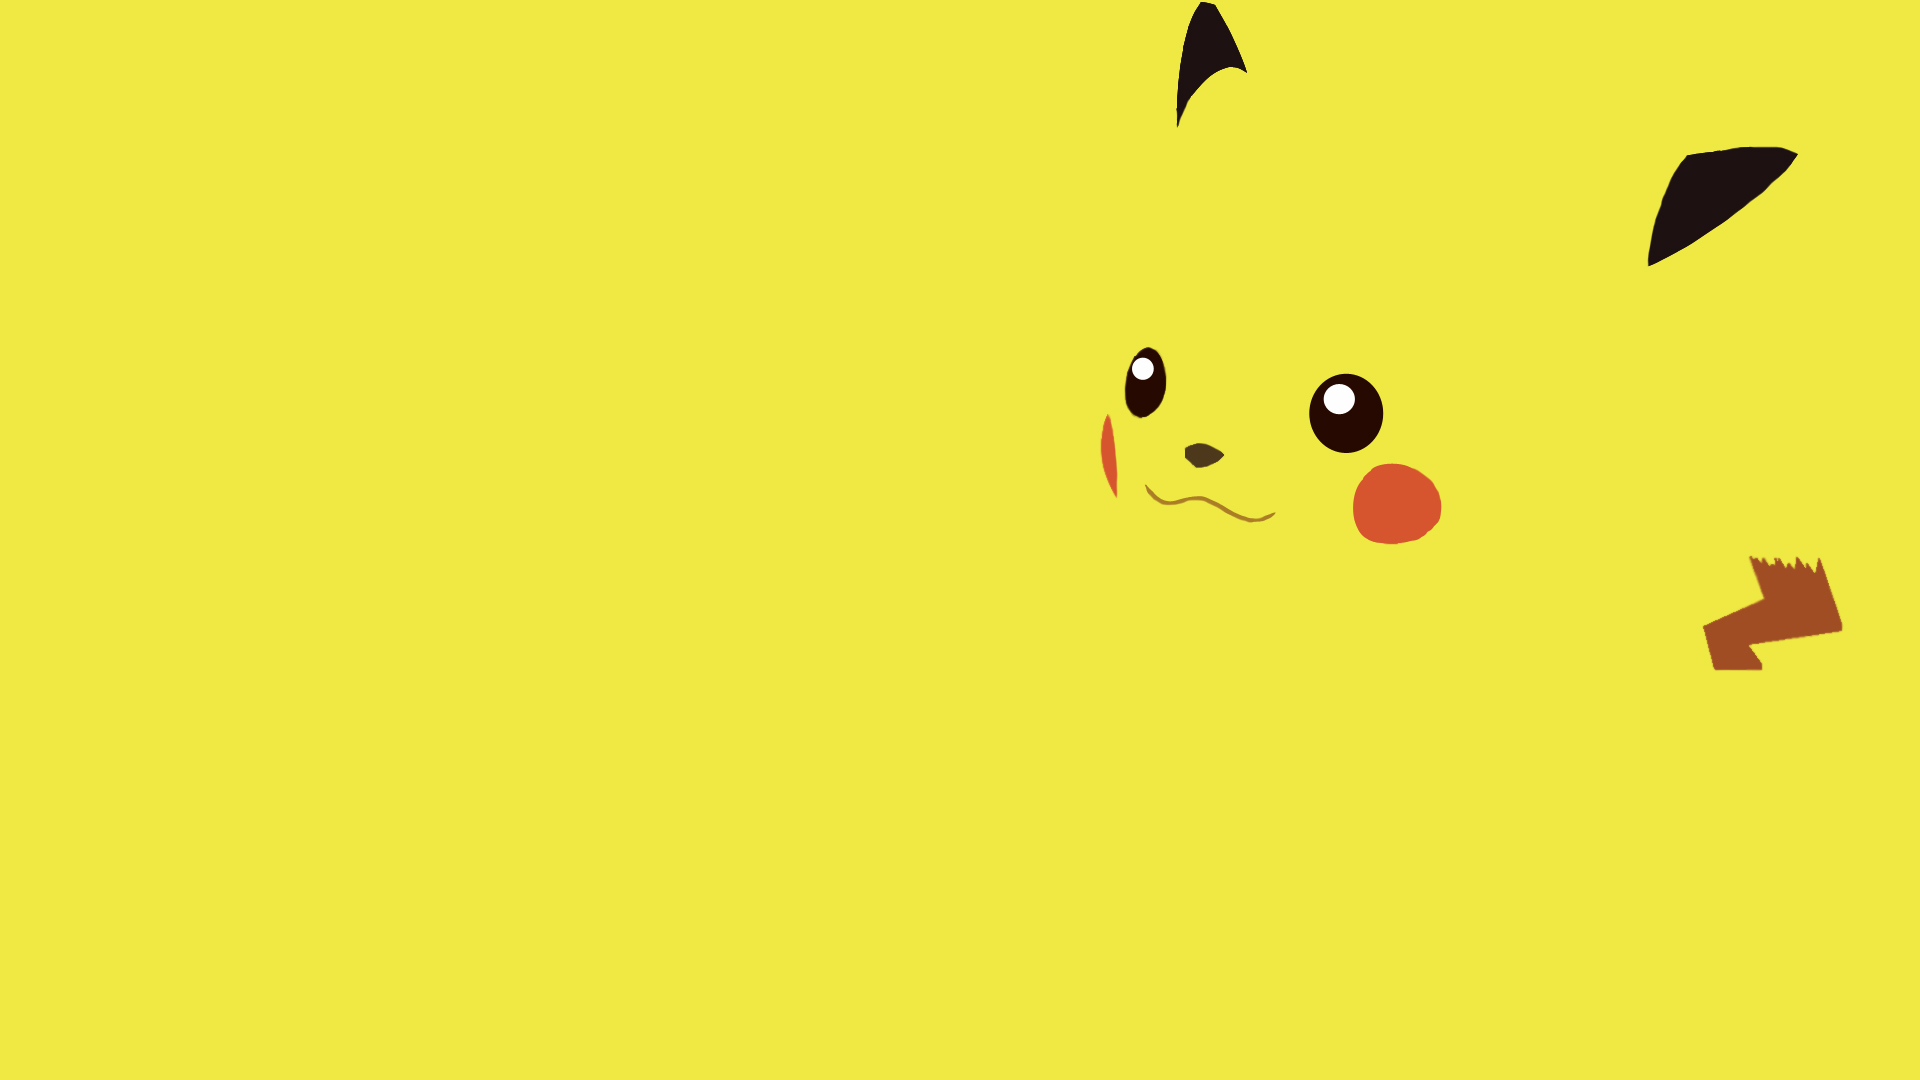 Cute-Pokemon-Full-HD-Pics-1920%C3%971080-wallpaper-wp3604494